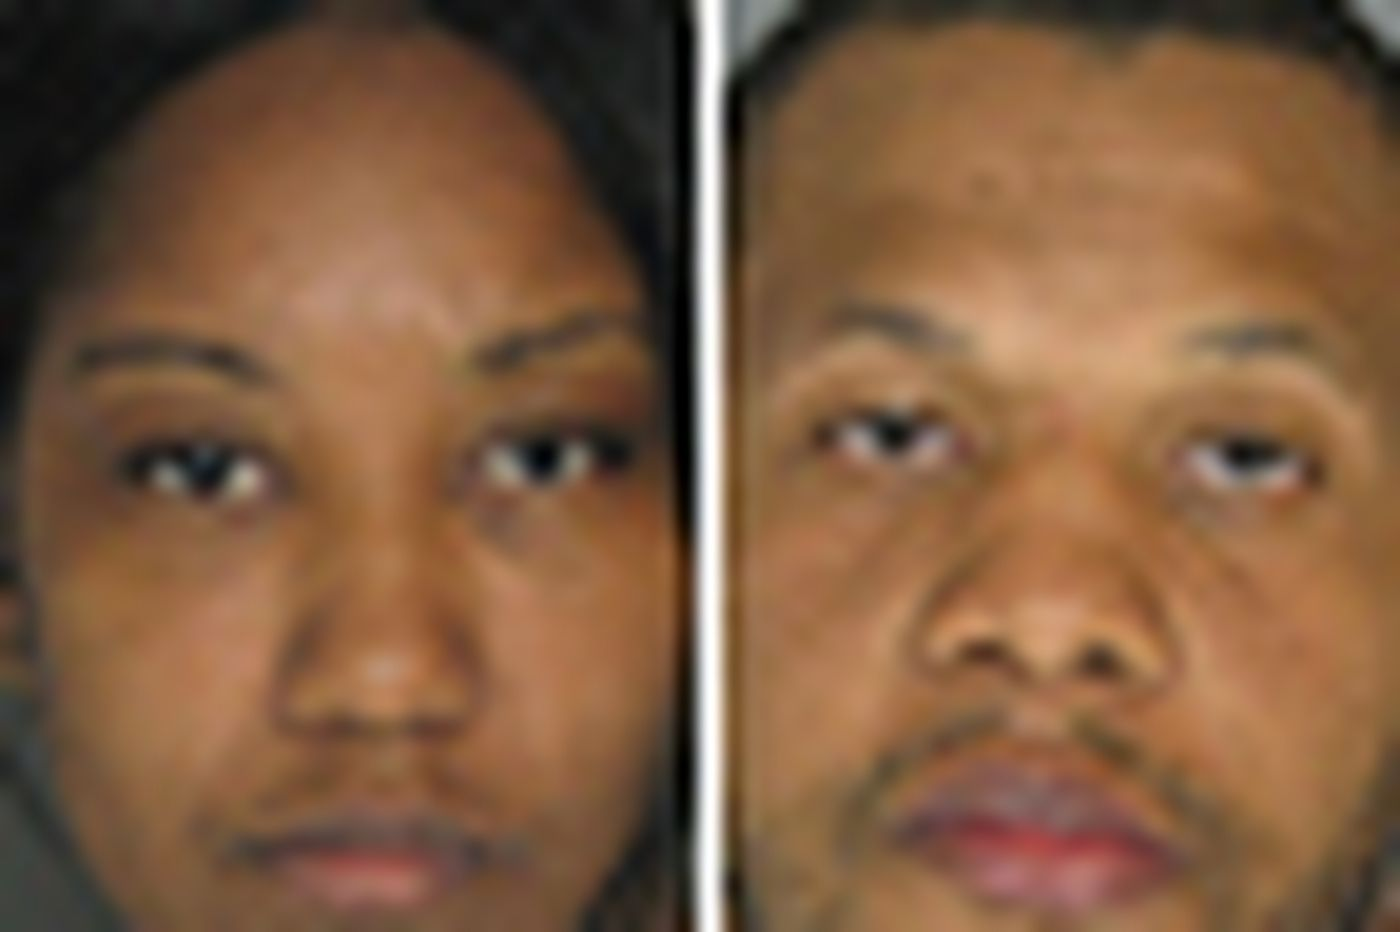 Police: $125K in pot seized, couple arrested